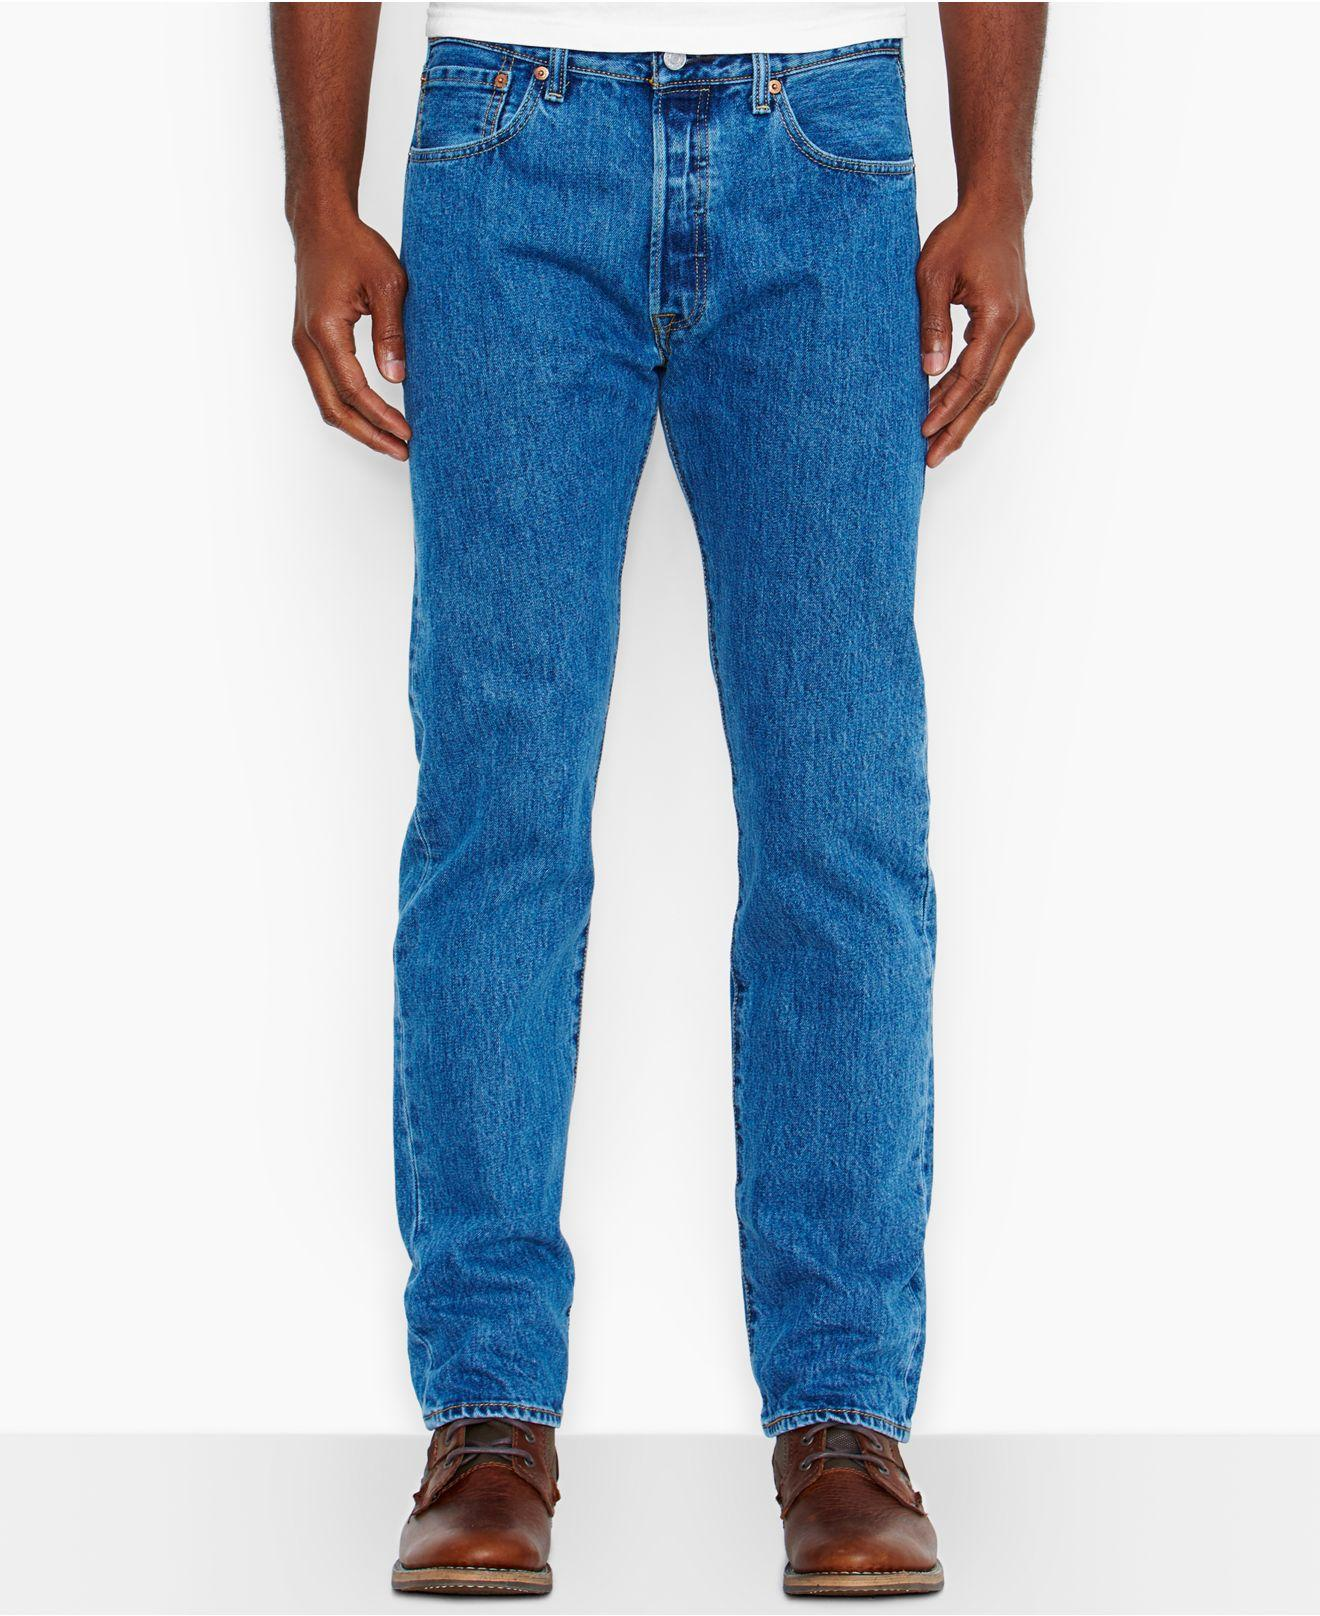 how to buy big and tall 501 levis in canada